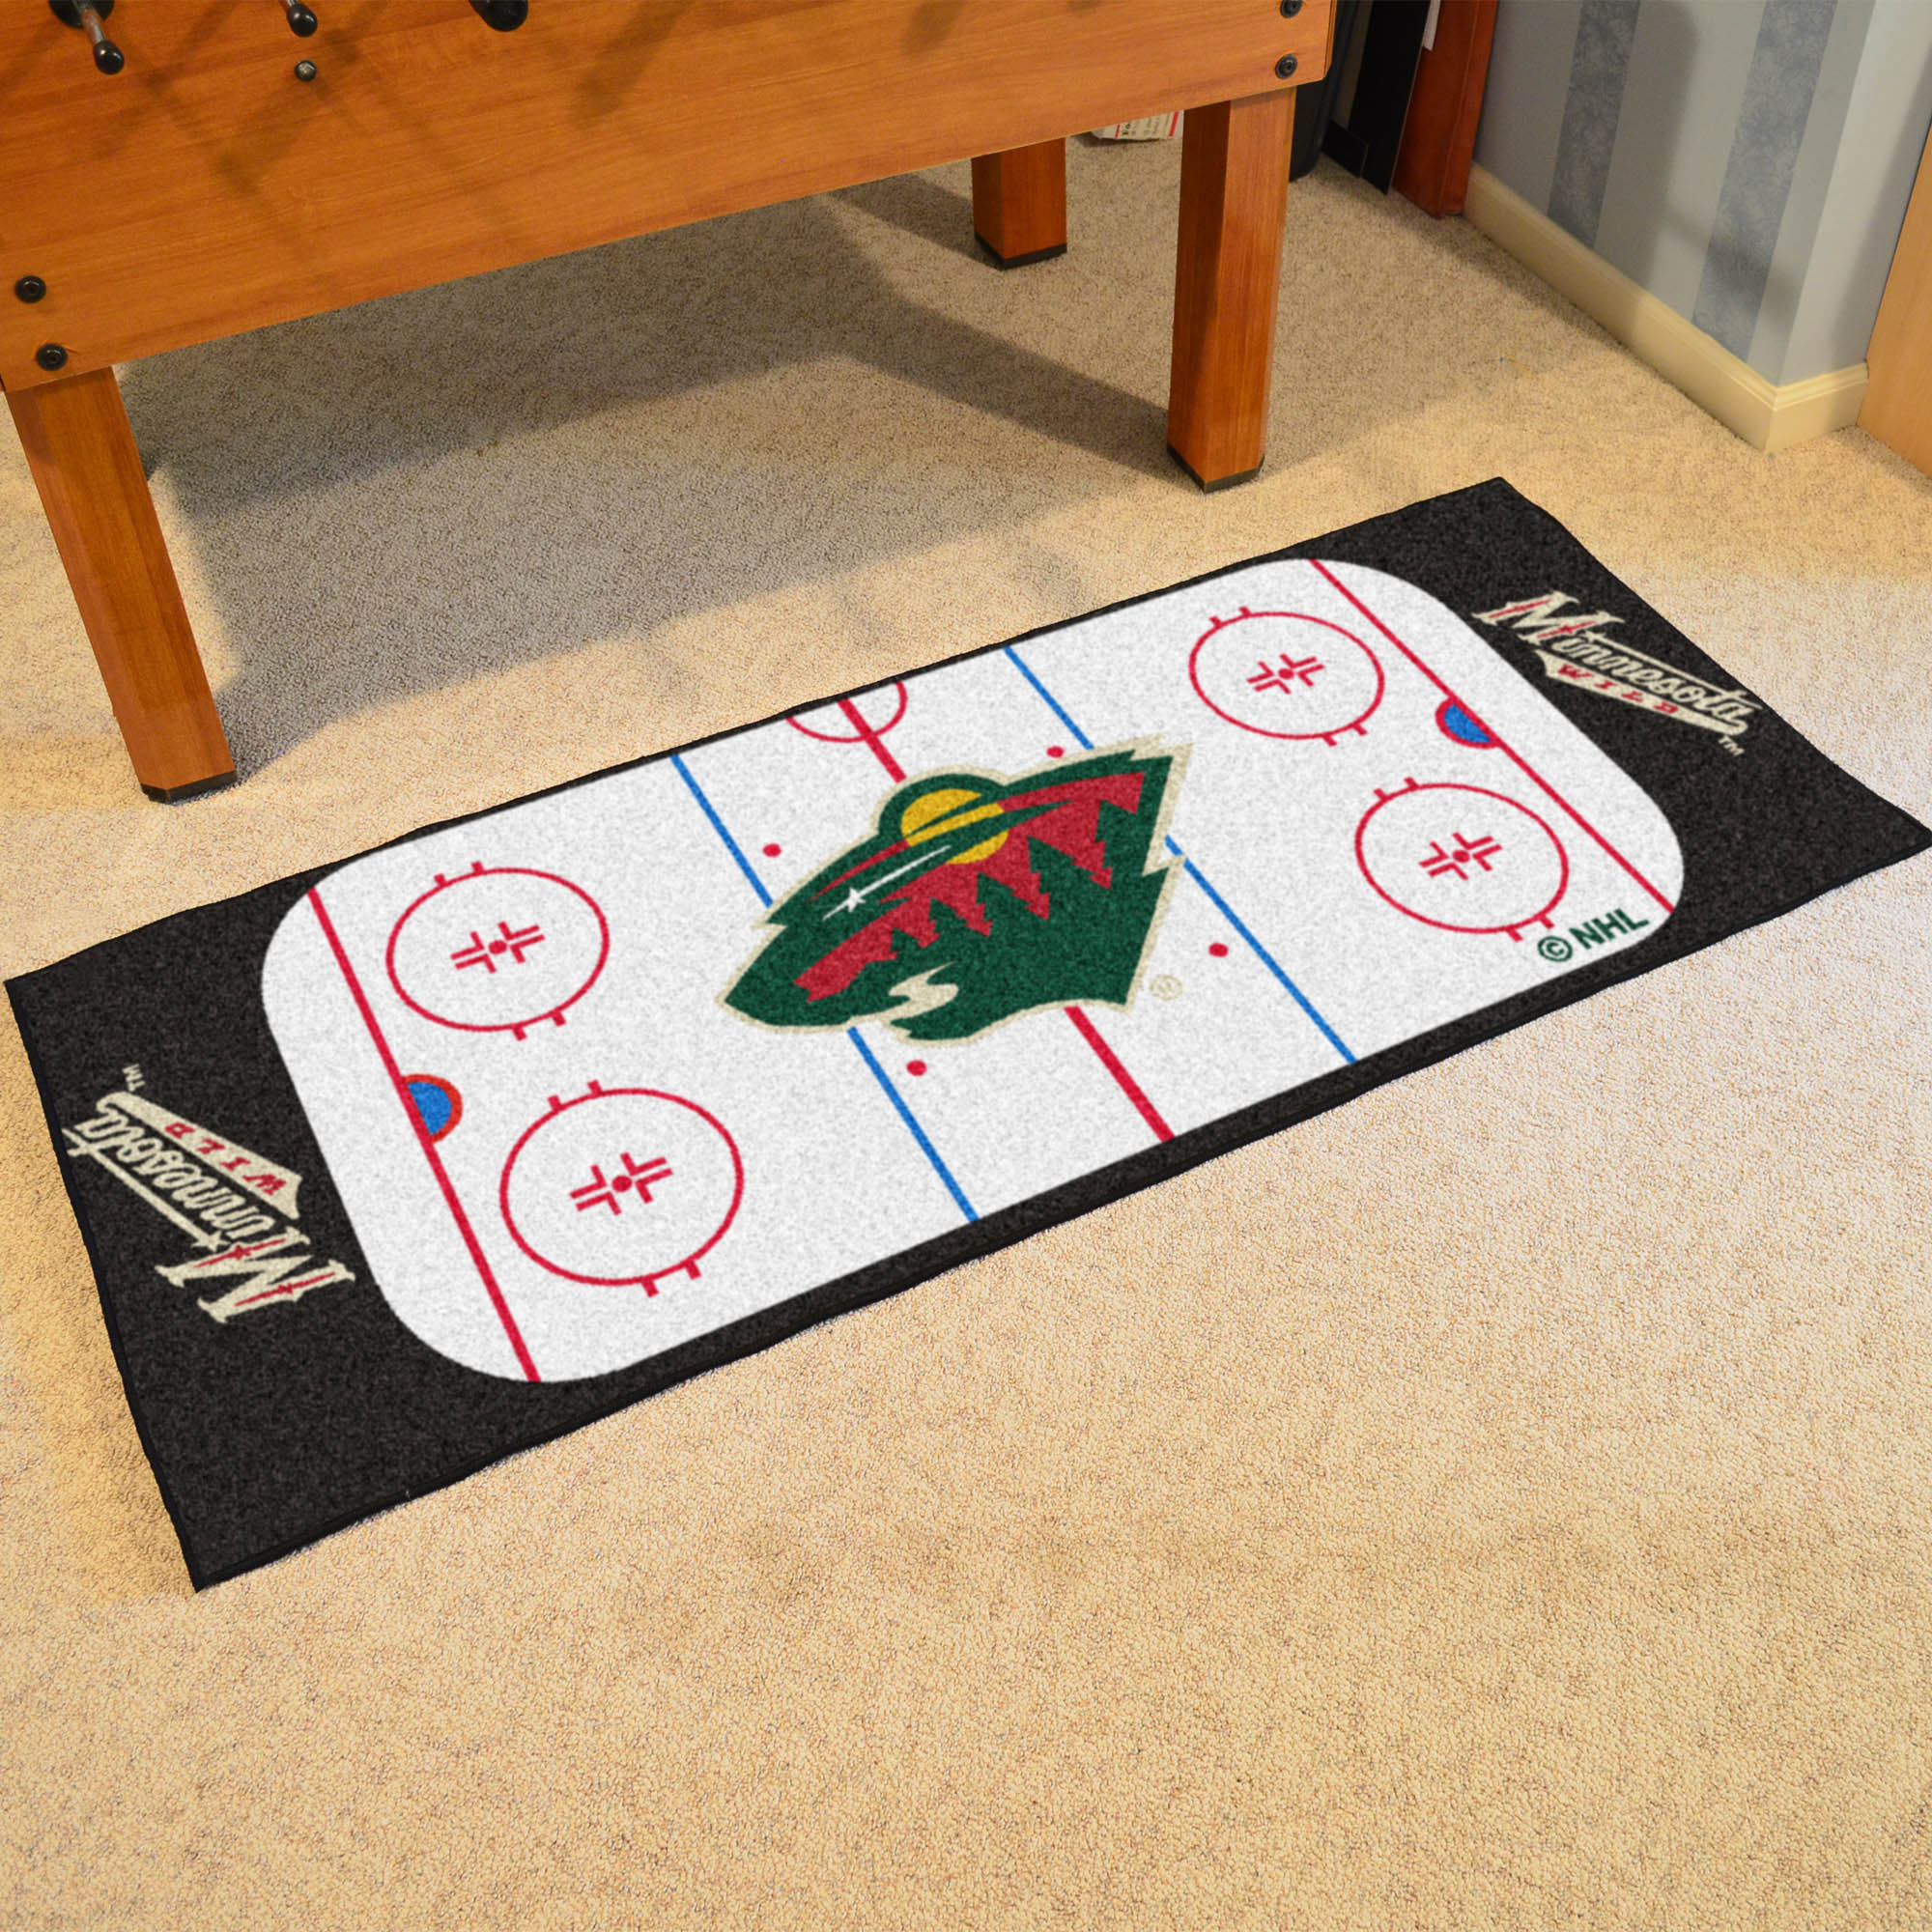 Minnesota Wild 30 x 72 Hockey Rink Carpet Runner